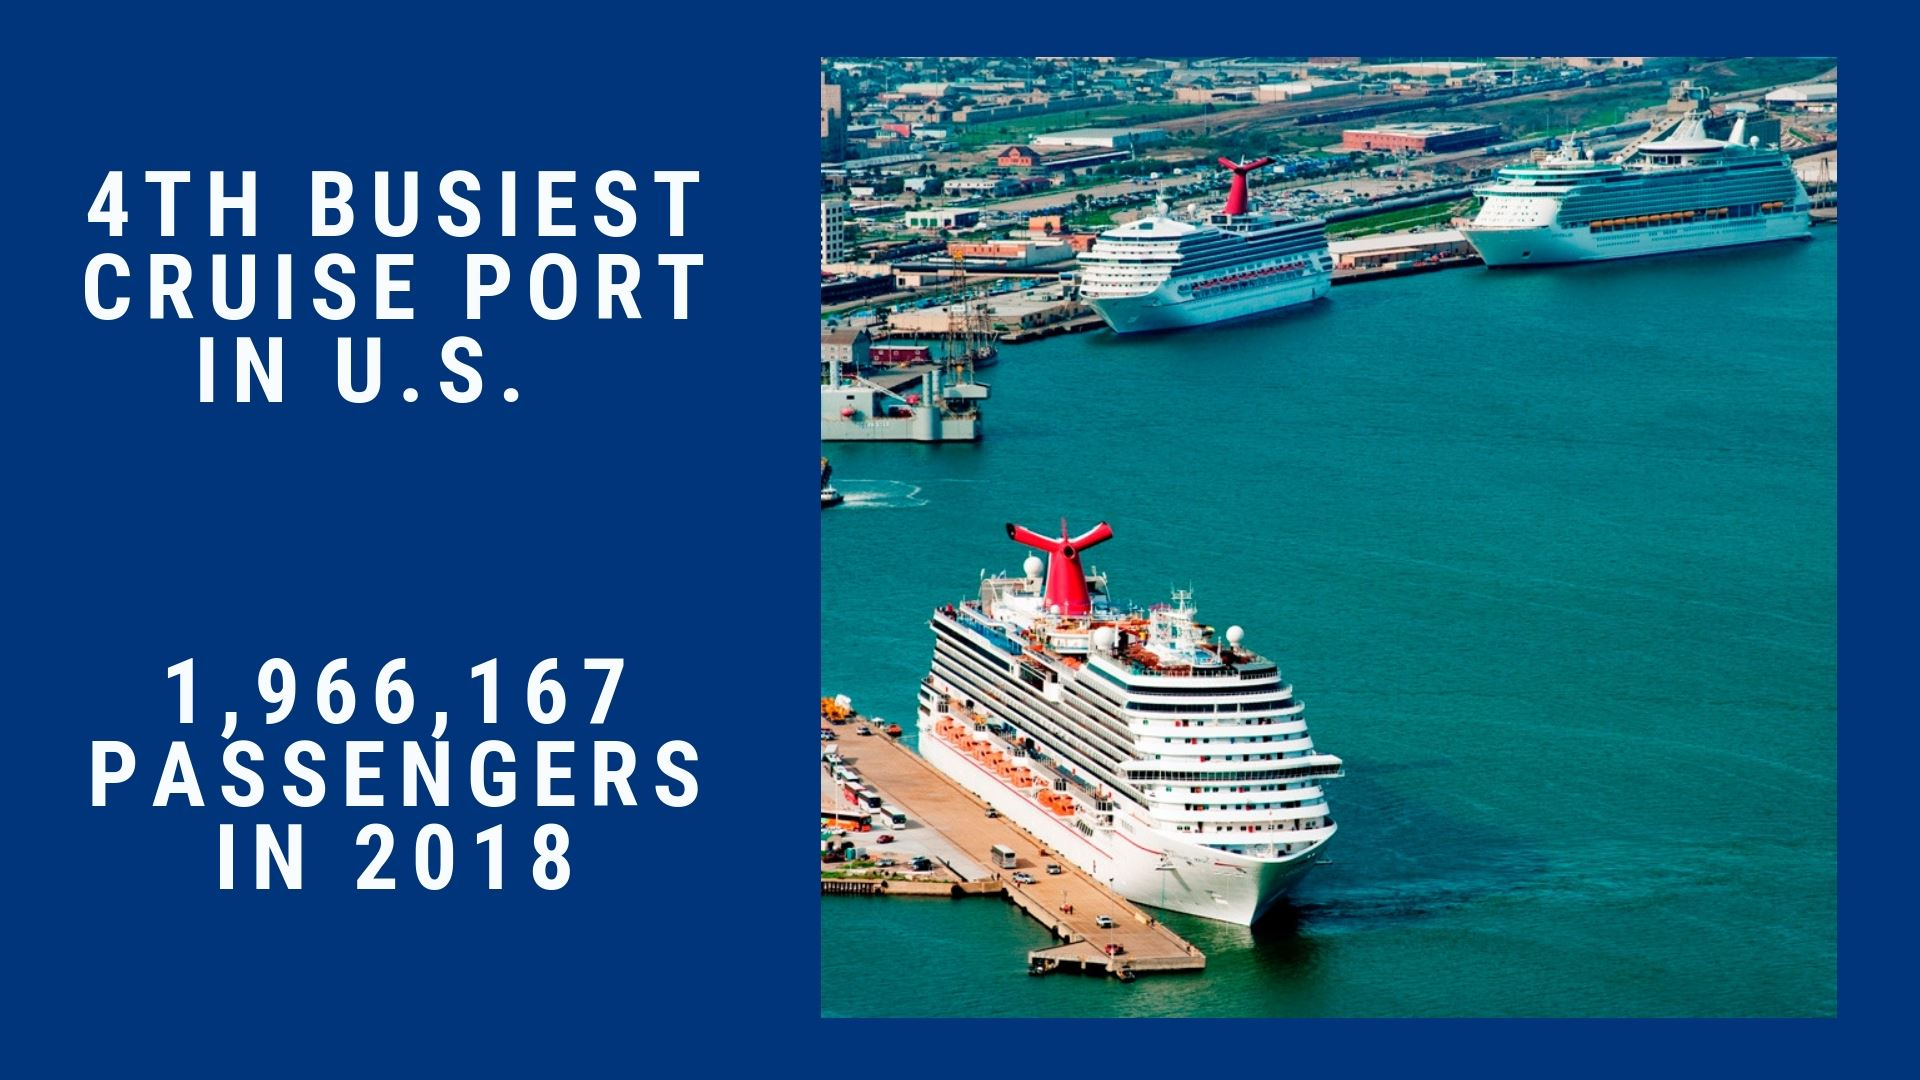 2019 Homepage Slideshow 4th busiest cruise port in US updated